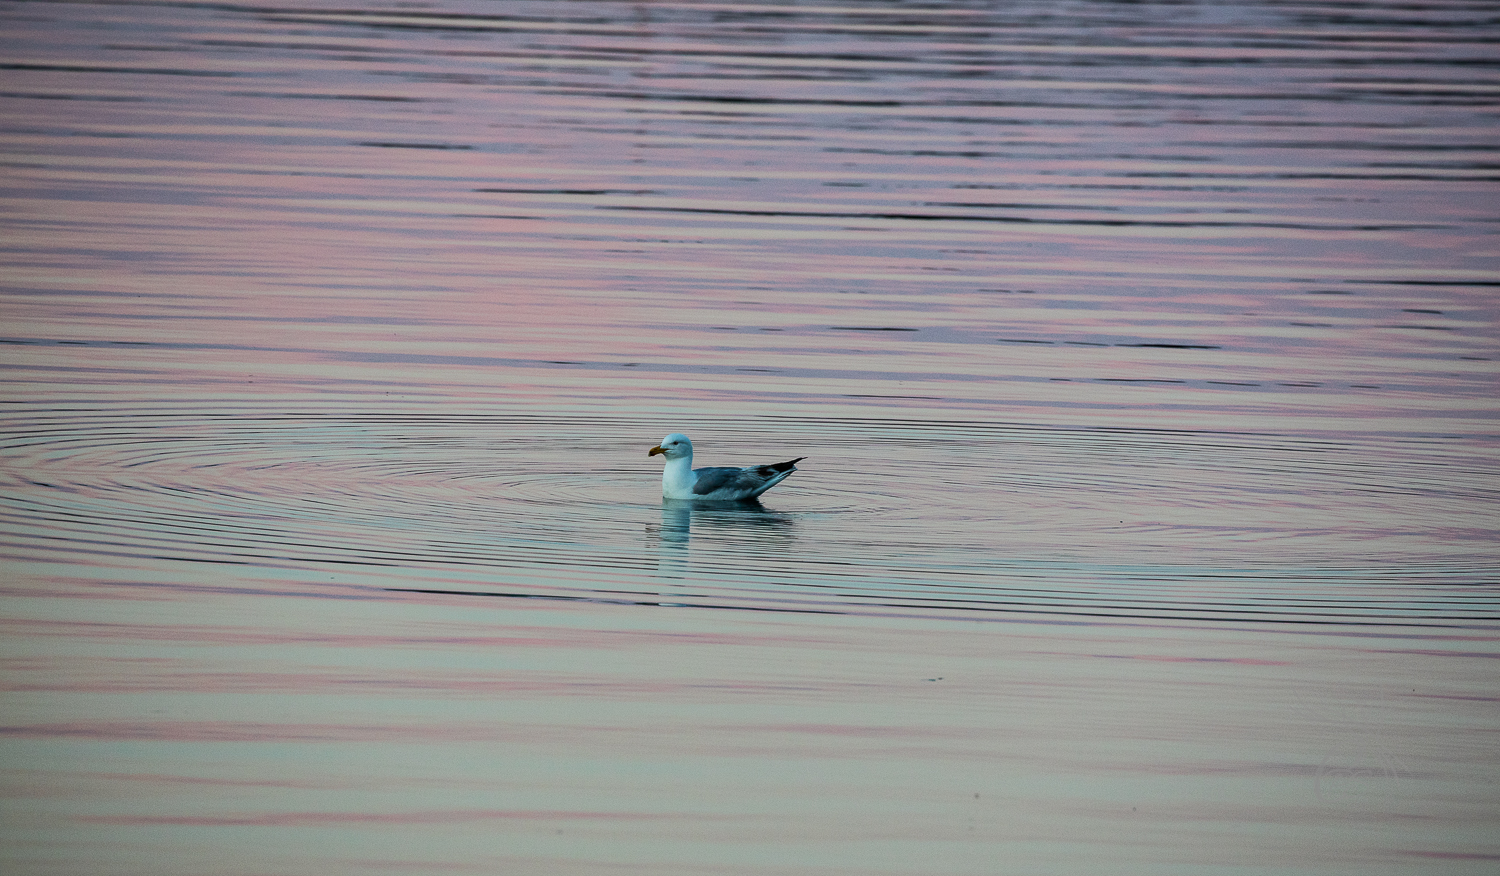 Nova Scotia: Seagull at Sunset